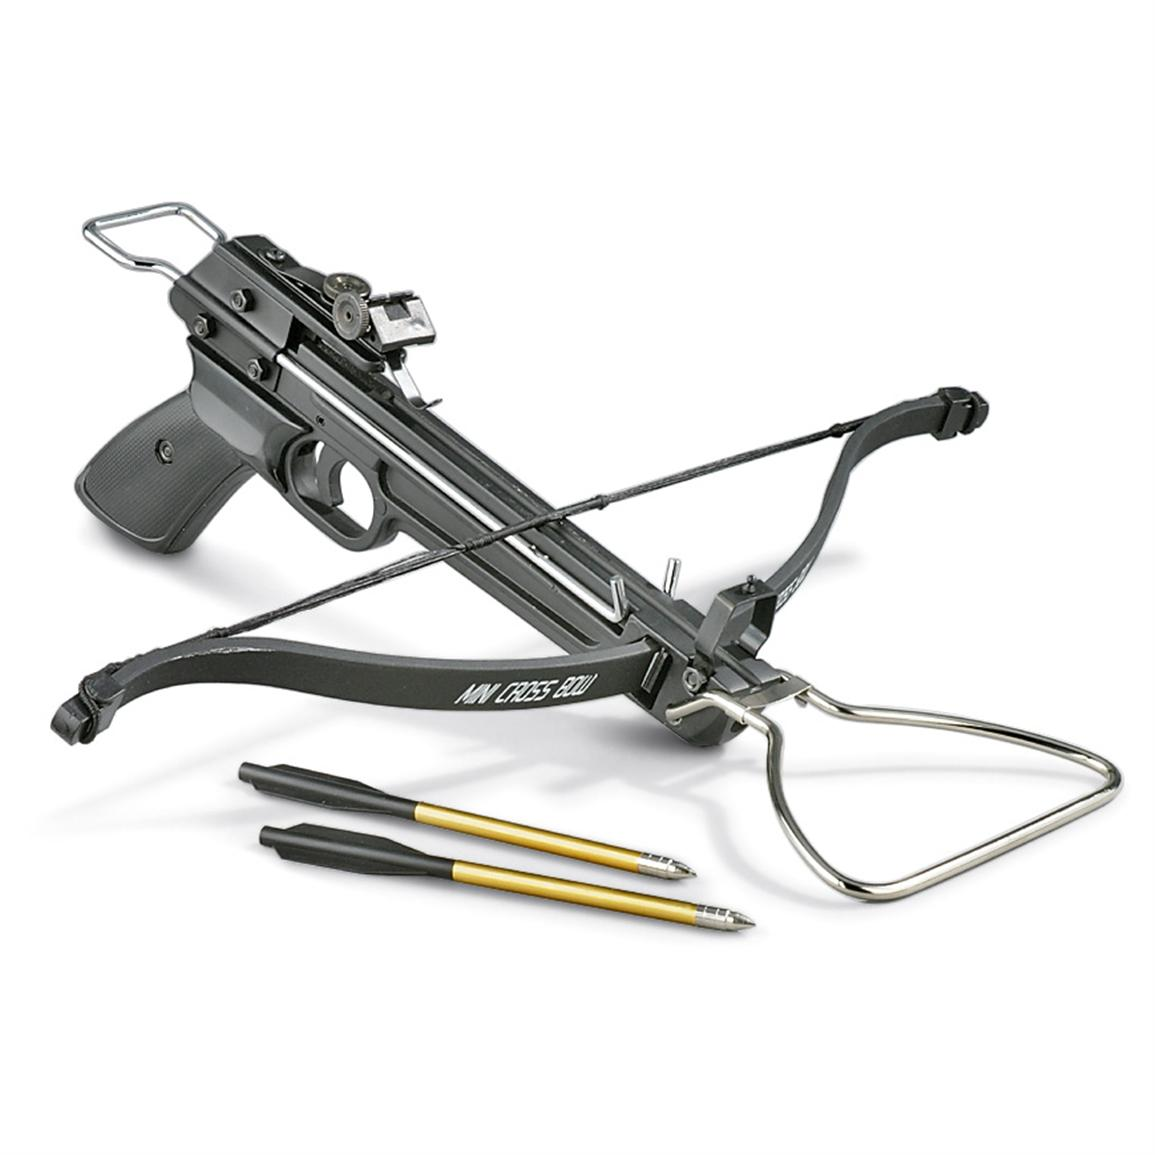 Pistol Crossbow, 80-lb Draw Weight - 209854, Crossbows at